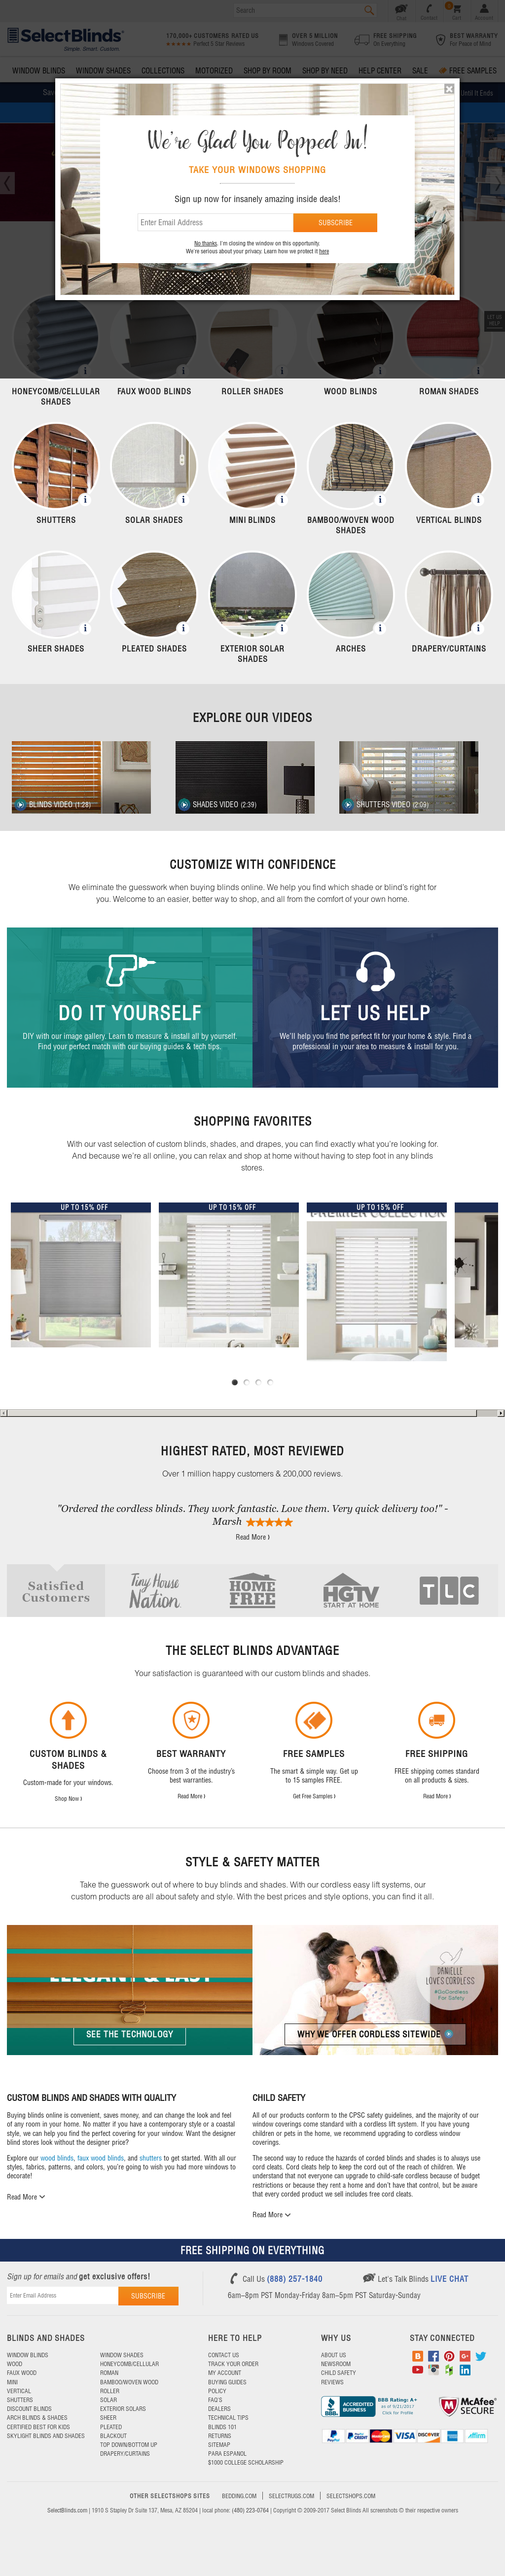 treatment blinds mice doors french download for select ideas pornici selectblinds door window shade gallery me and com image blind coverings of